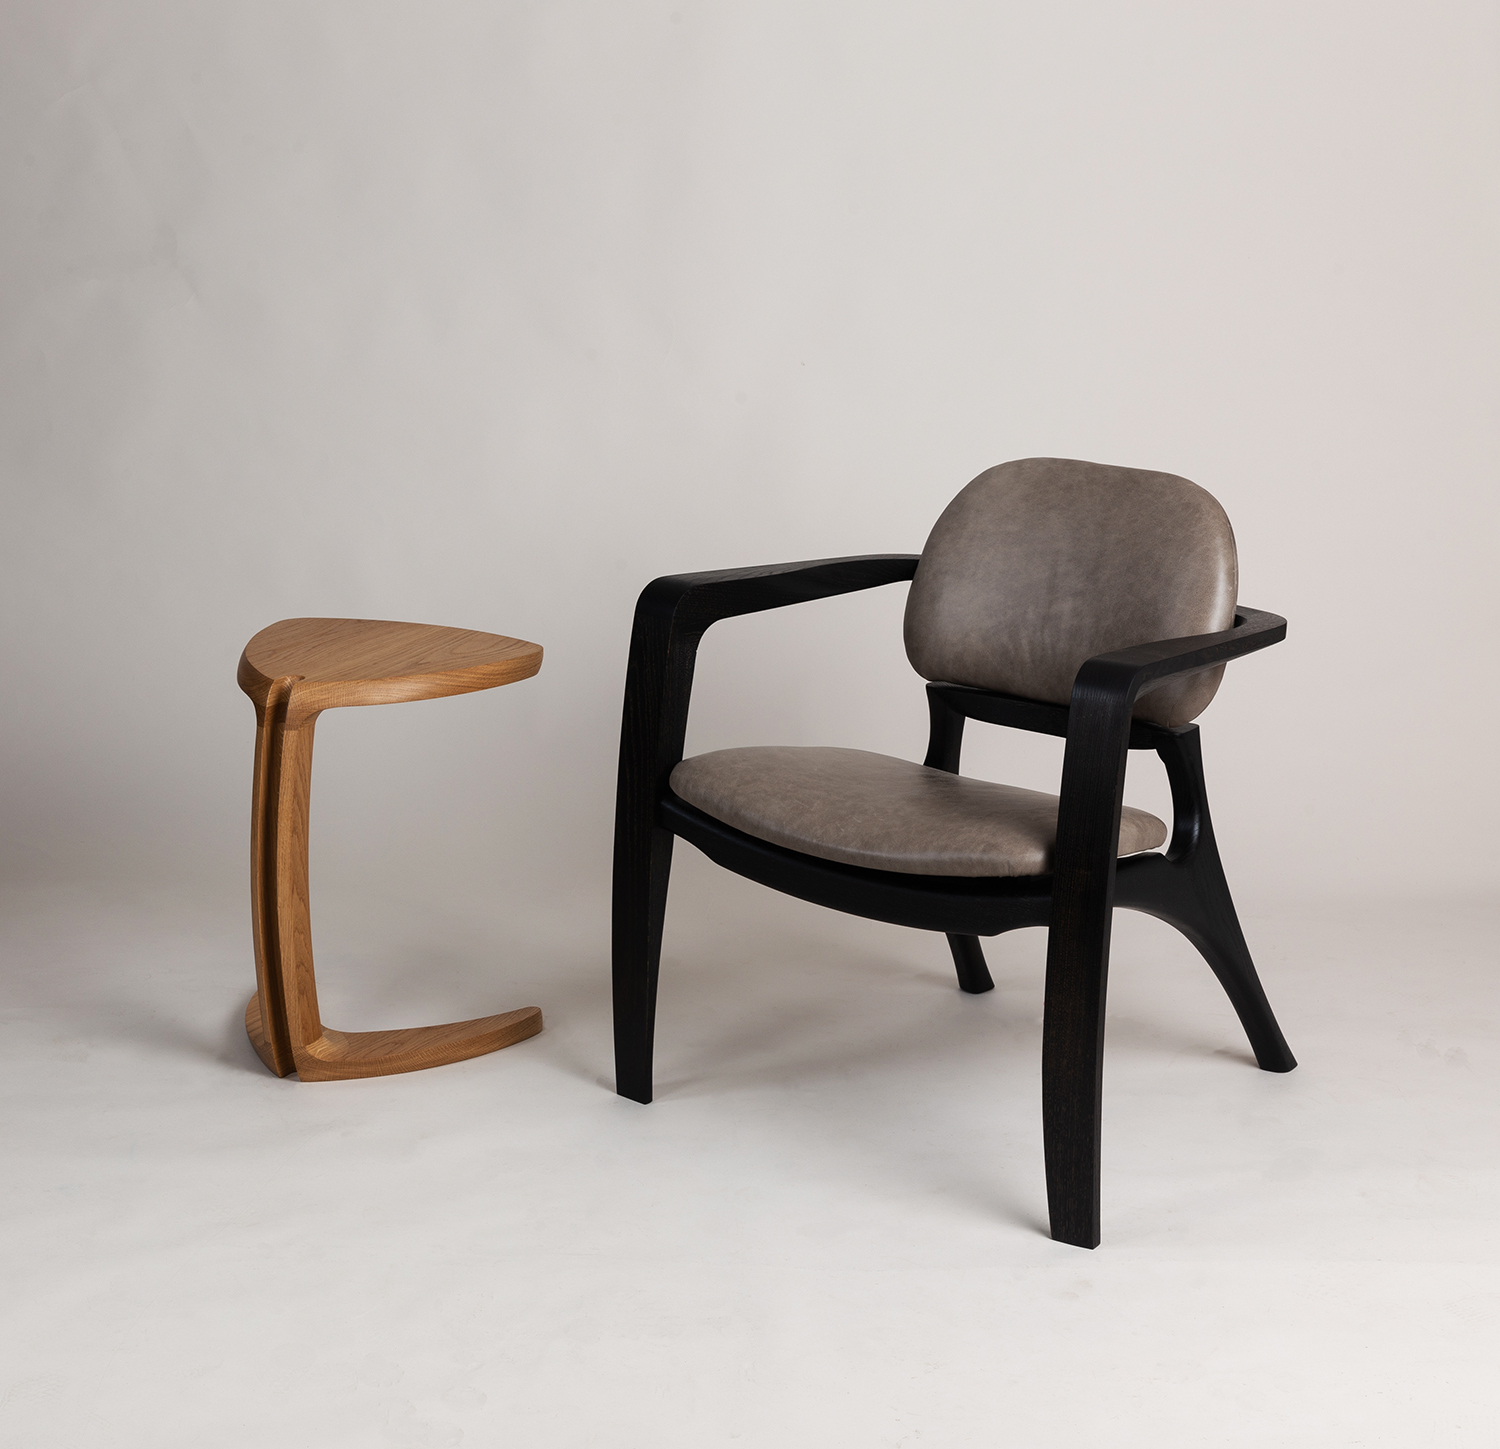 Amplex Chair and Fleure side Table by Alan Flannery Furniture Design L3.jpg